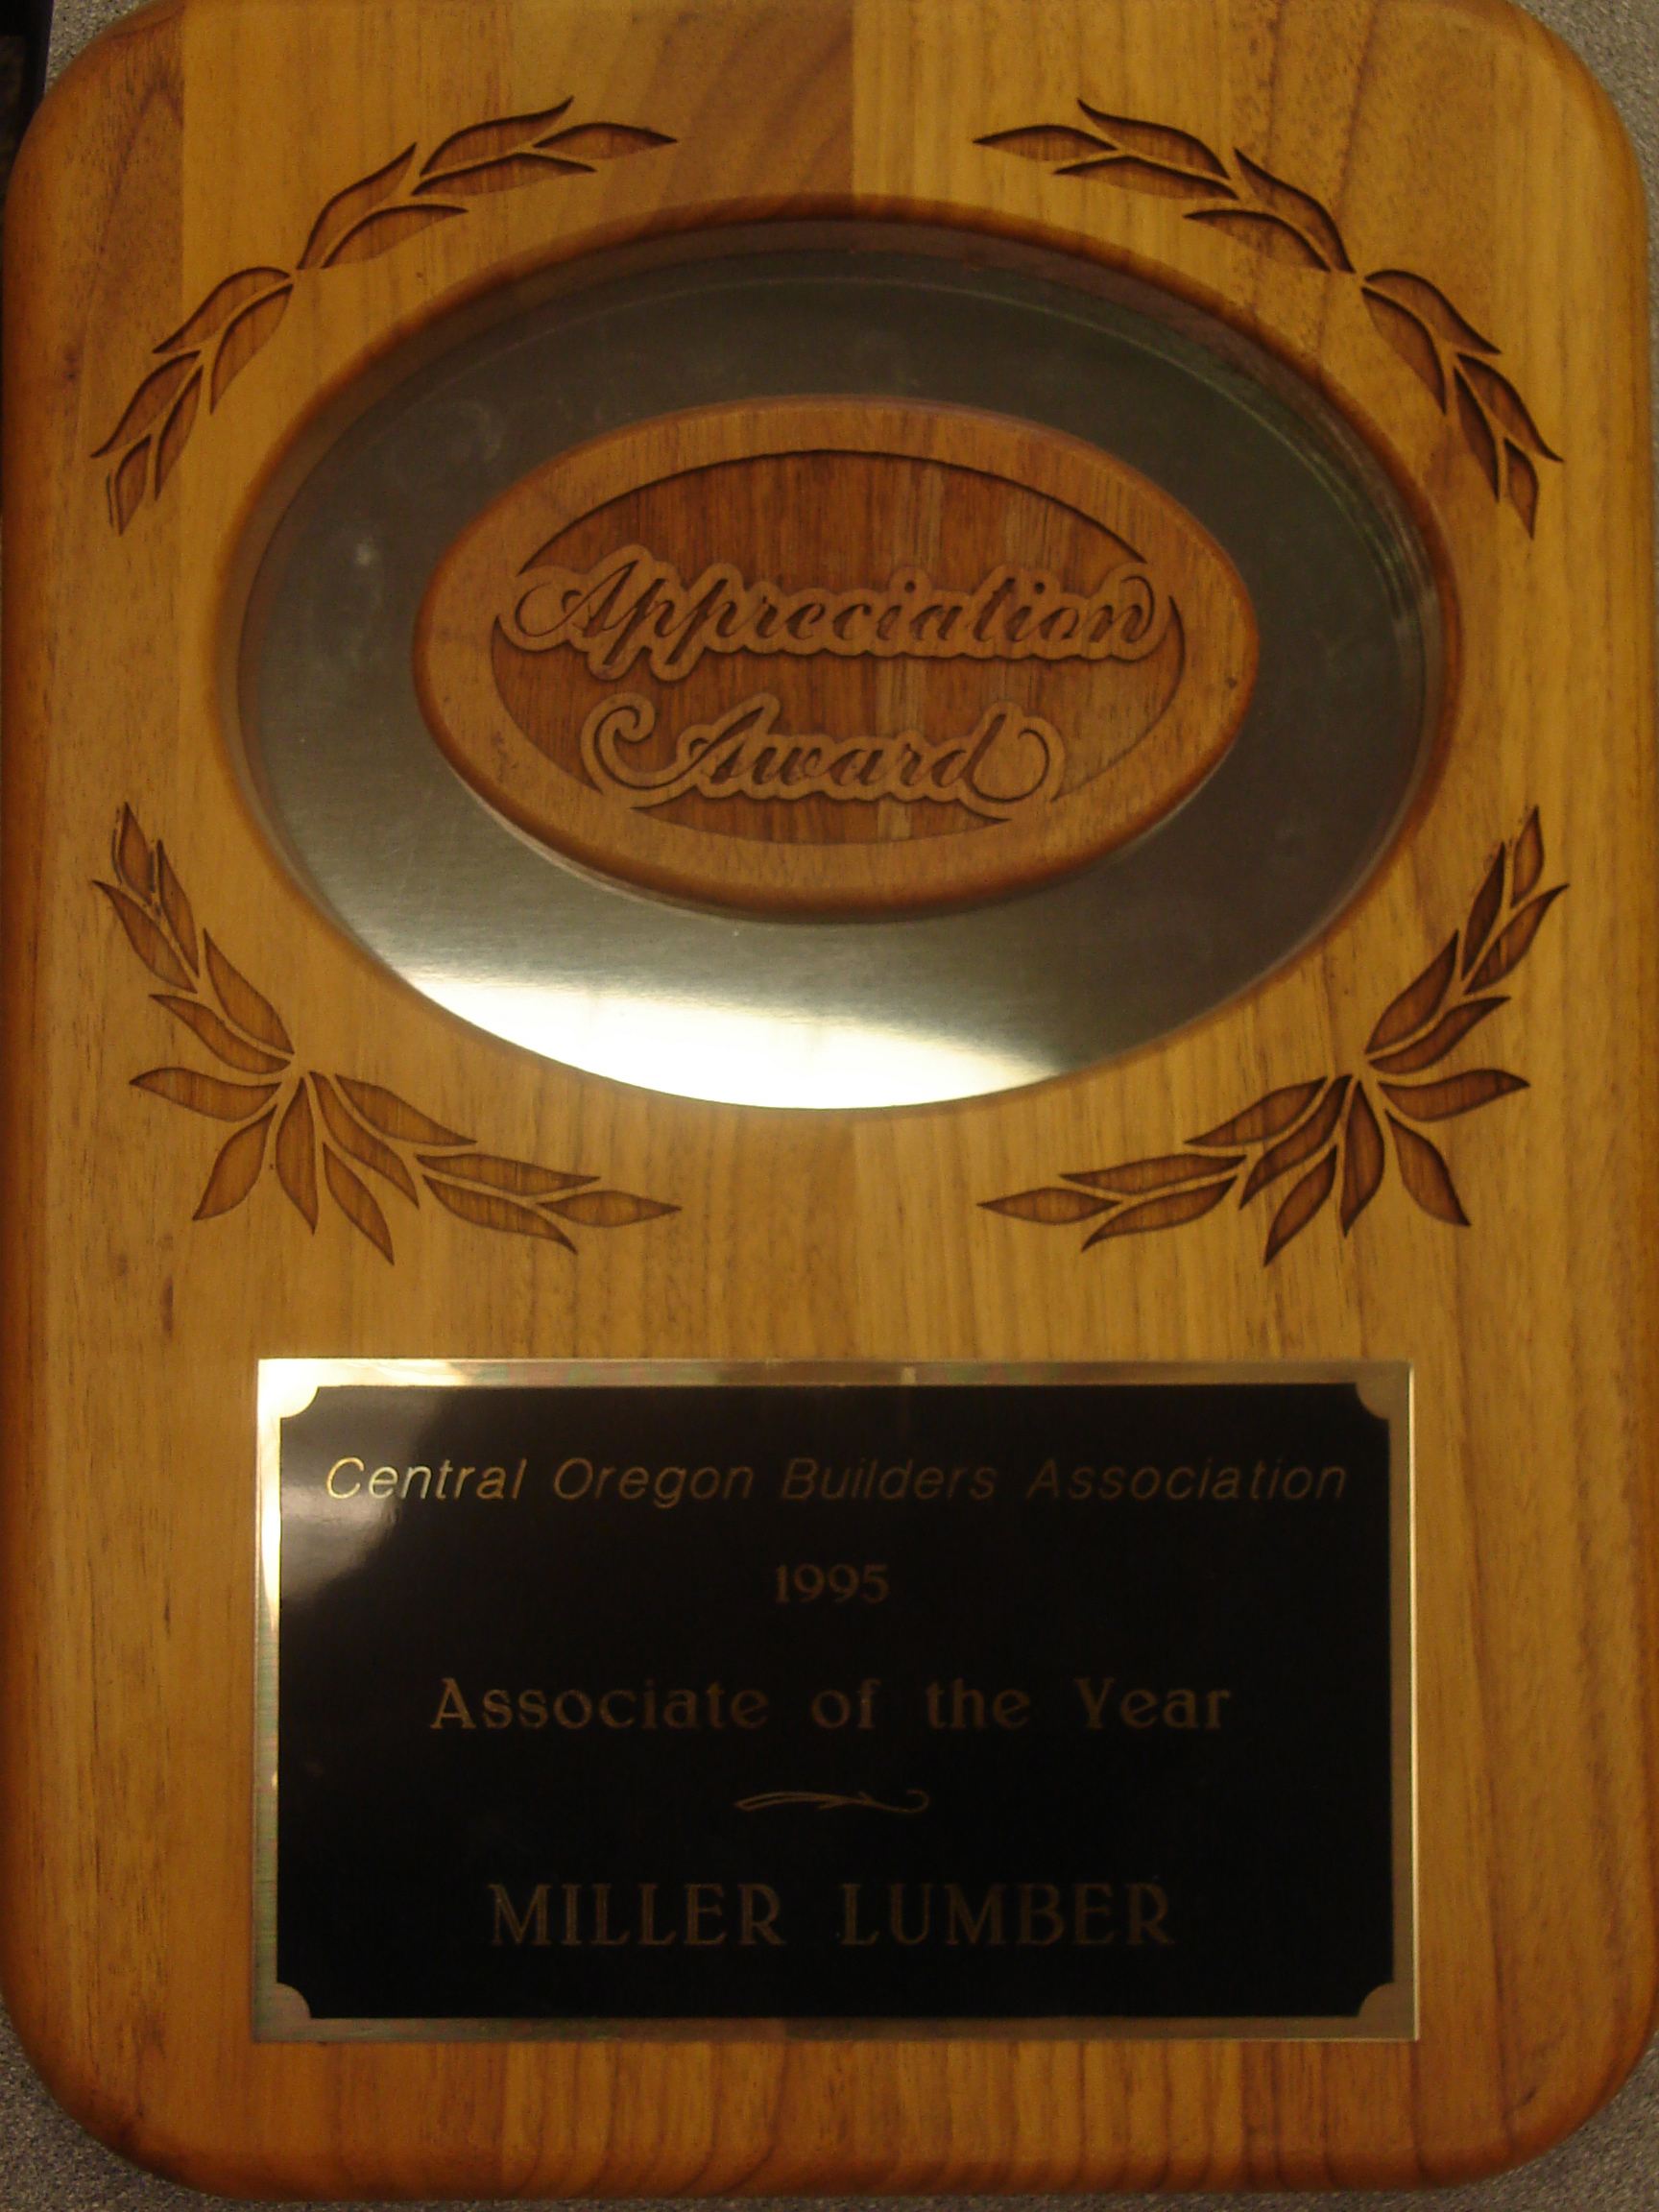 Miller Lumber was named the Central Oregon Builder's Association's 1995 Associate of the Year.